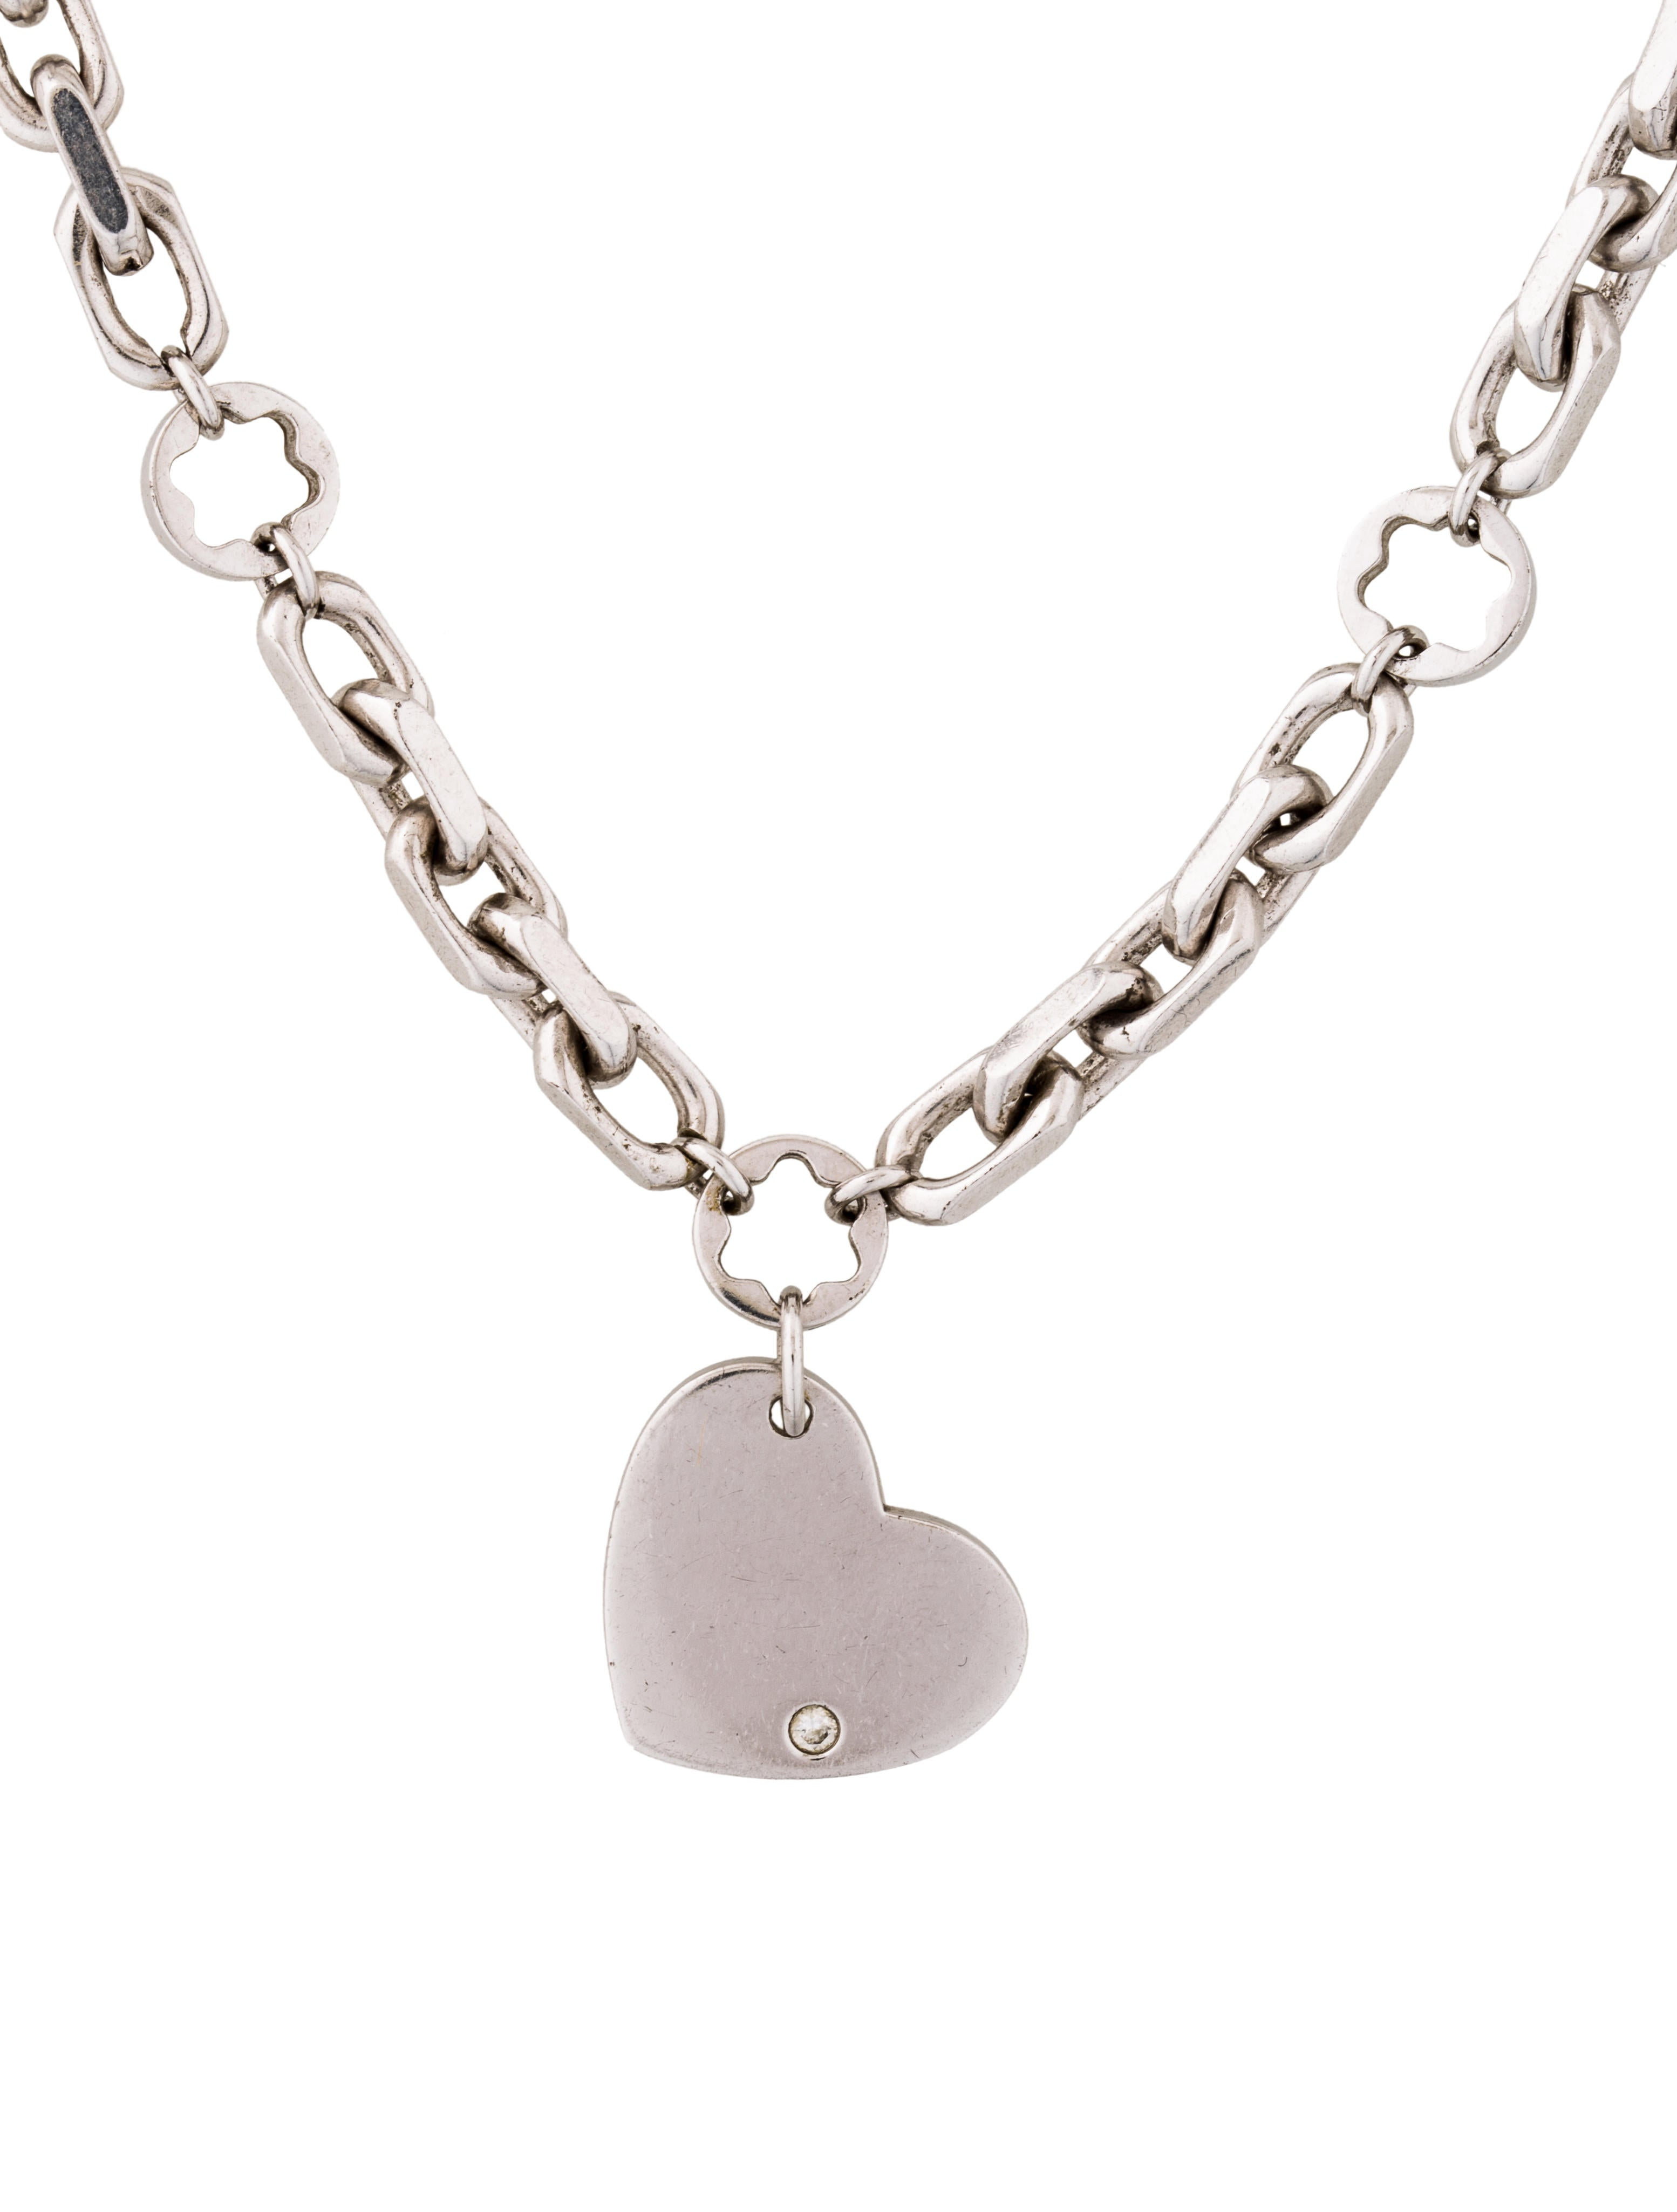 Montblanc Diamond Heart Pendant Necklace Necklaces  : MBL214281enlarged from www.therealreal.com size 3108 x 4100 jpeg 318kB